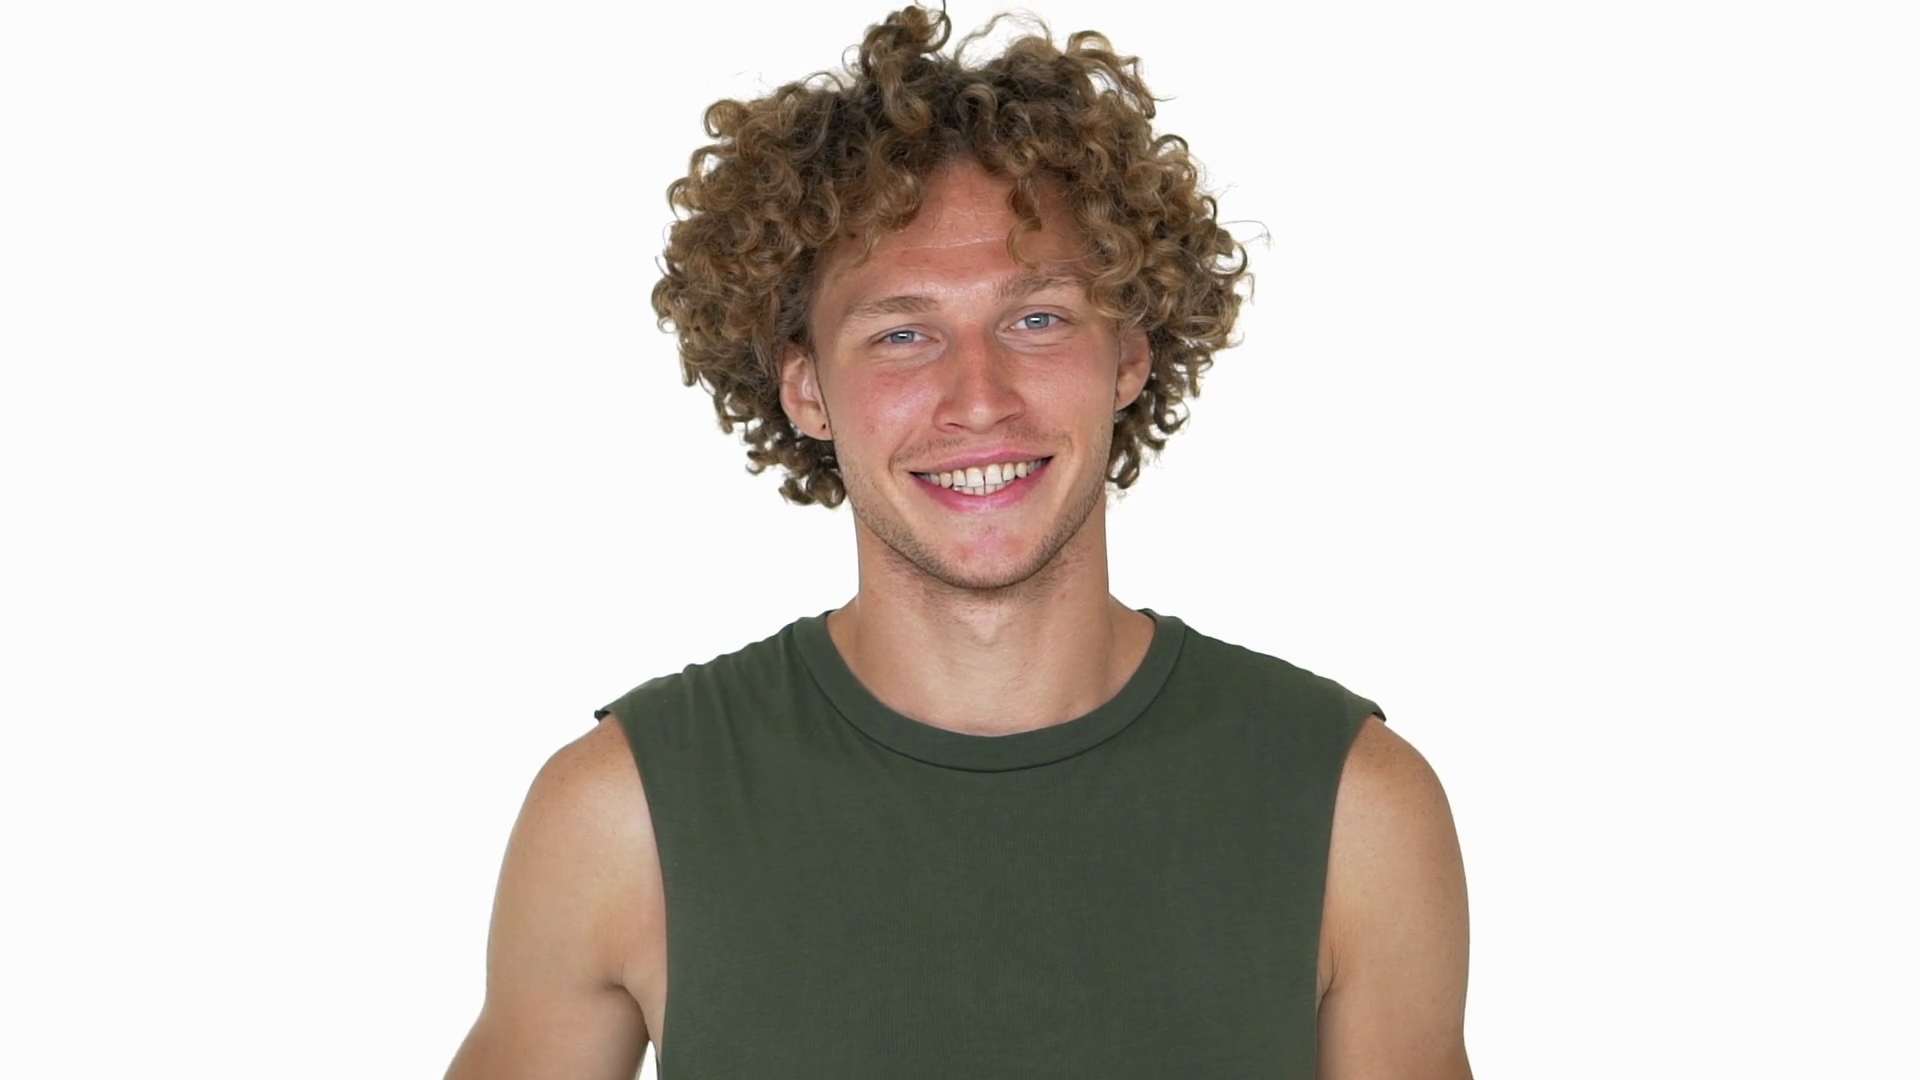 Green Eye White Male Png Free Green Eye White Male Png Transparent Images 22482 Pngio